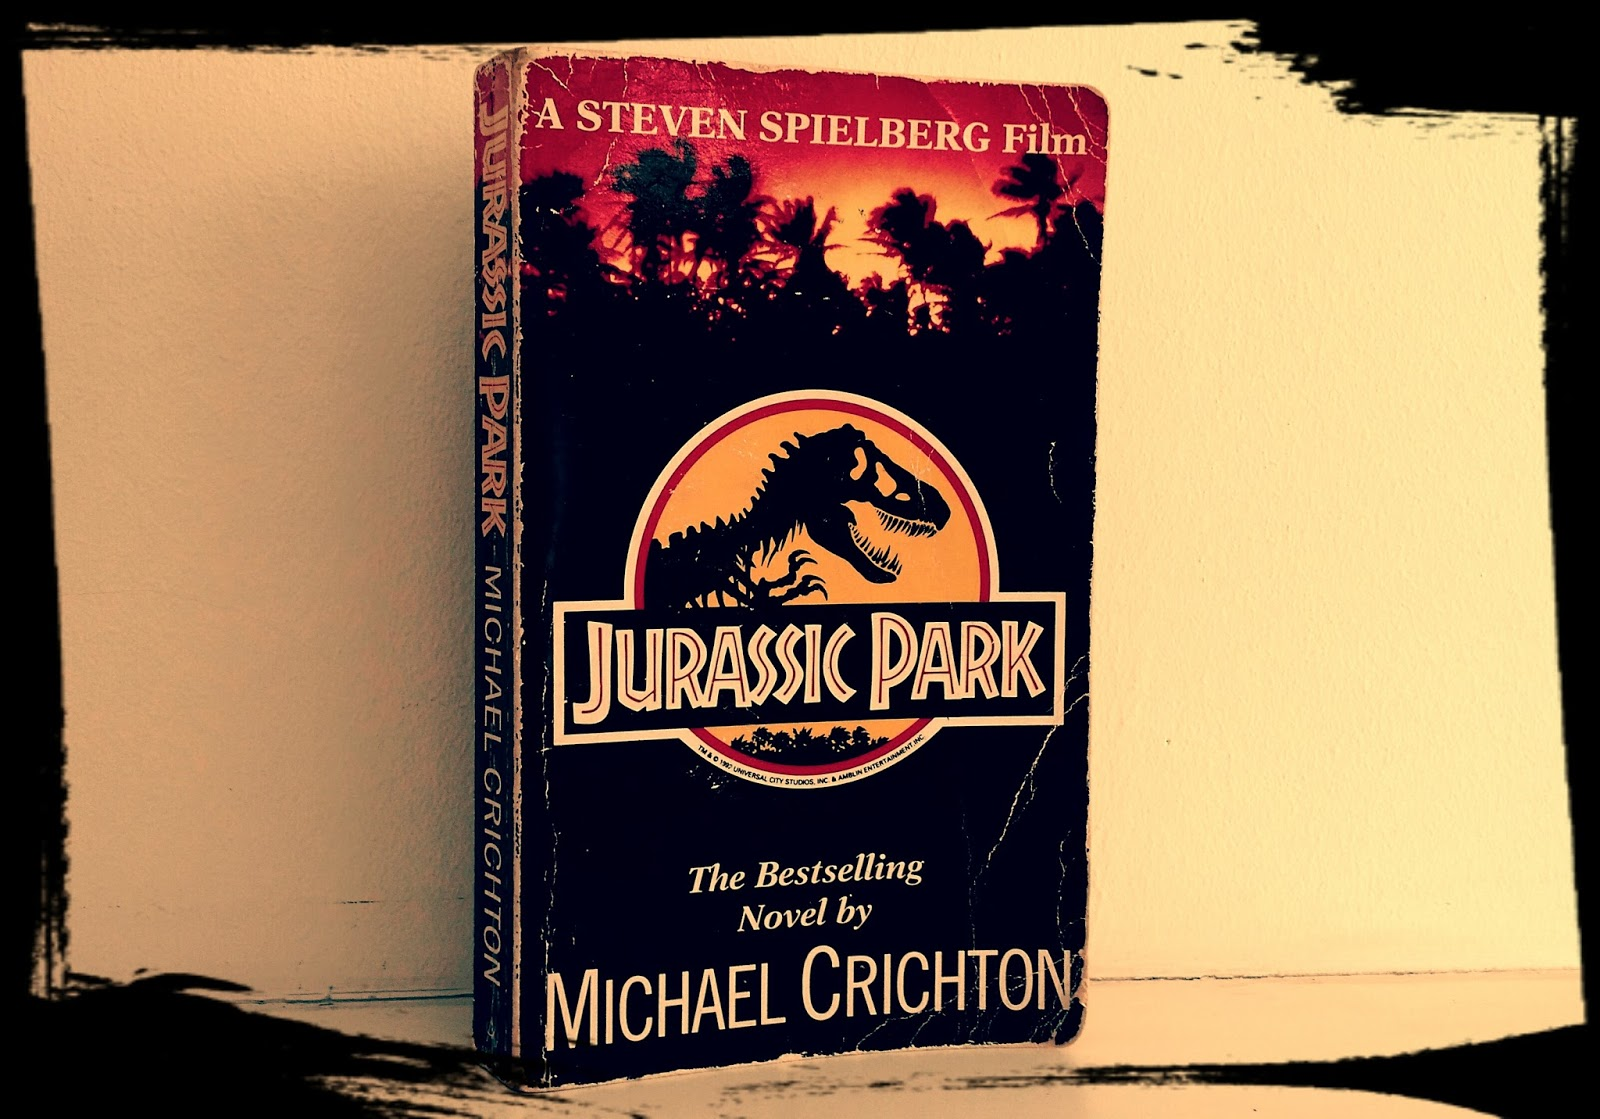 an analysis of jurassic park by michael crichton its not the dinosaurs fault Jurassic park summary & study guide michael crichton this study guide consists of approximately 50 pages of chapter summaries, quotes, character analysis, themes, and more - everything you need to sharpen your knowledge of jurassic park.